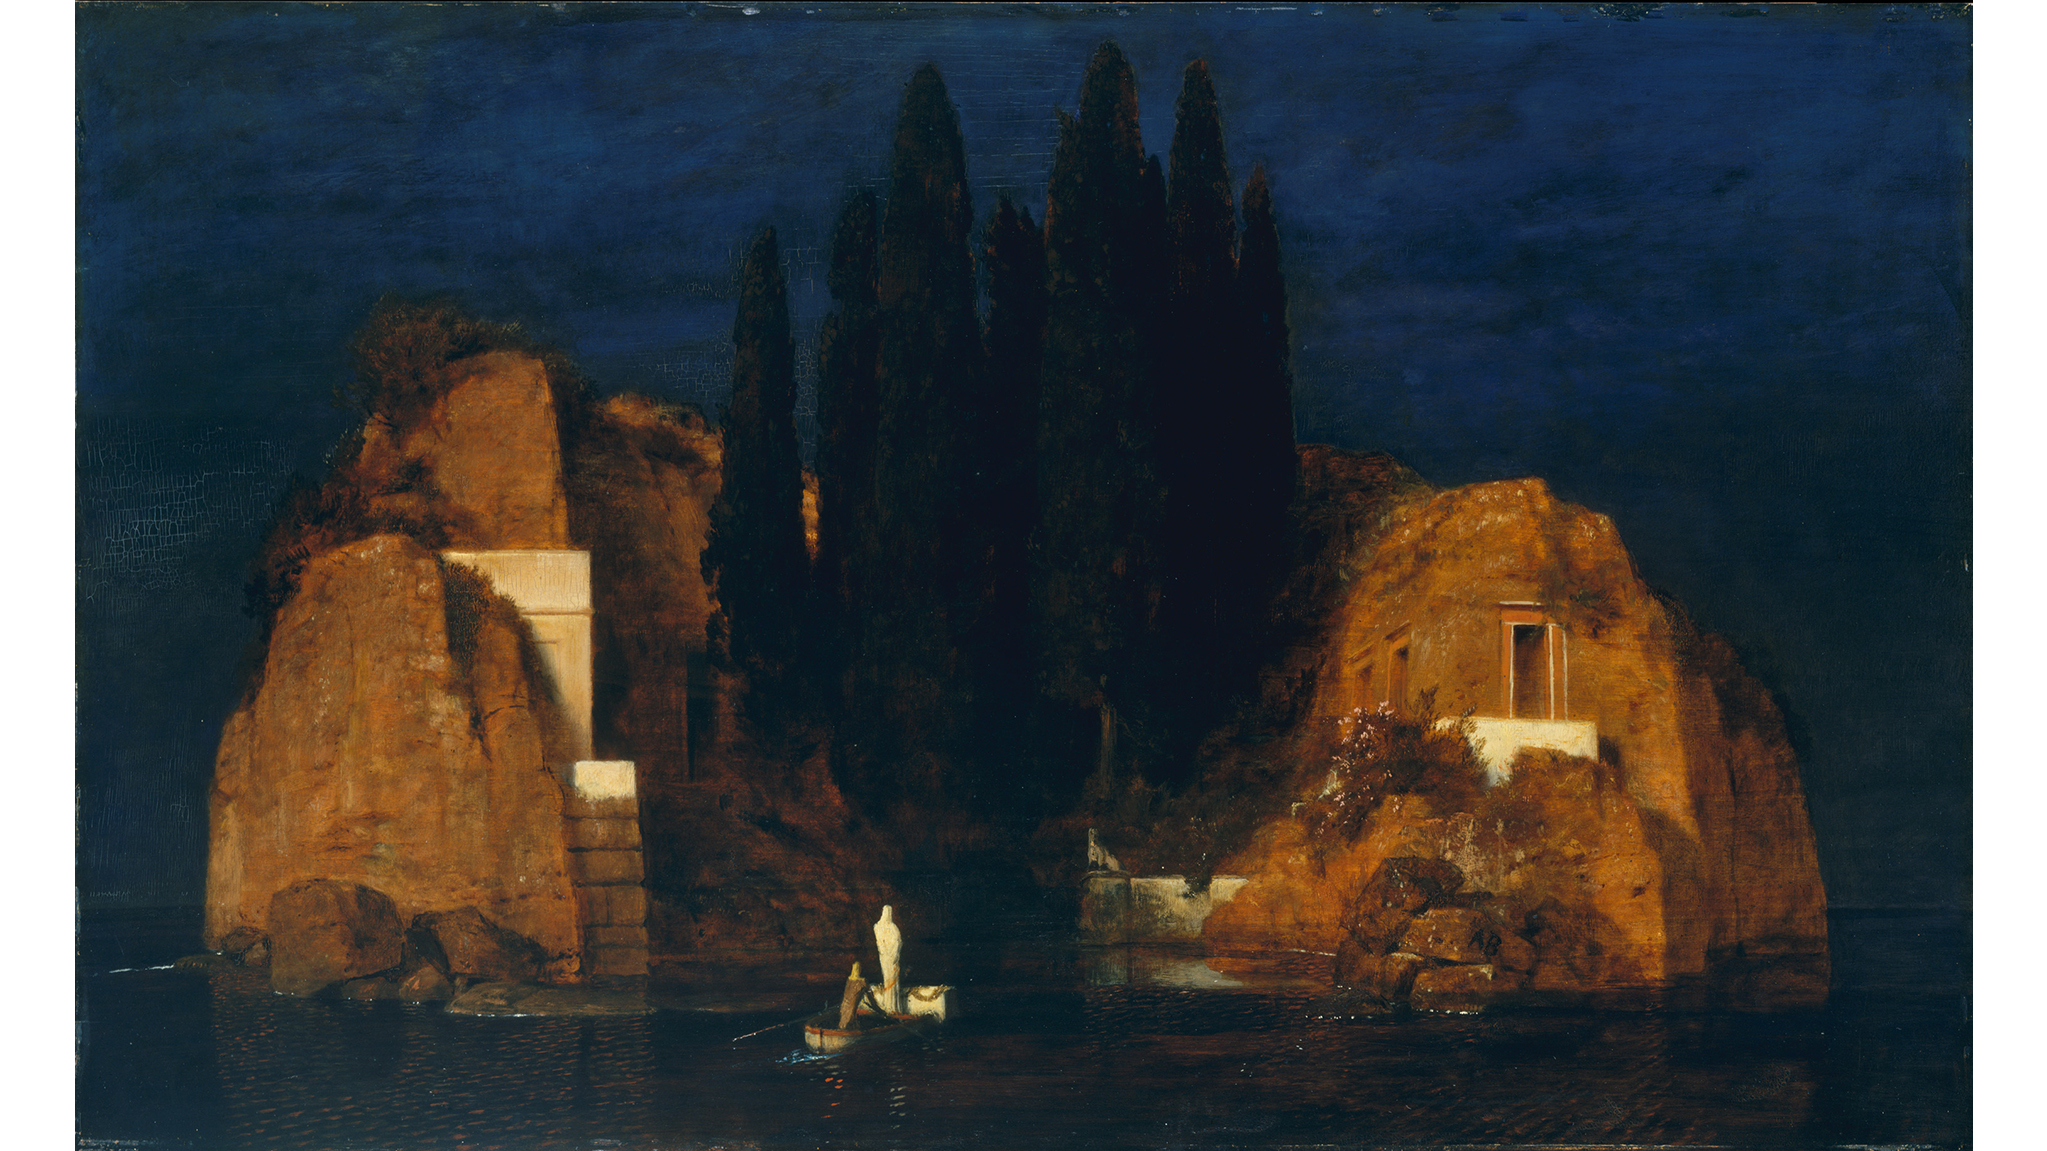 Arnold Böcklin, Island of the Dead,1880